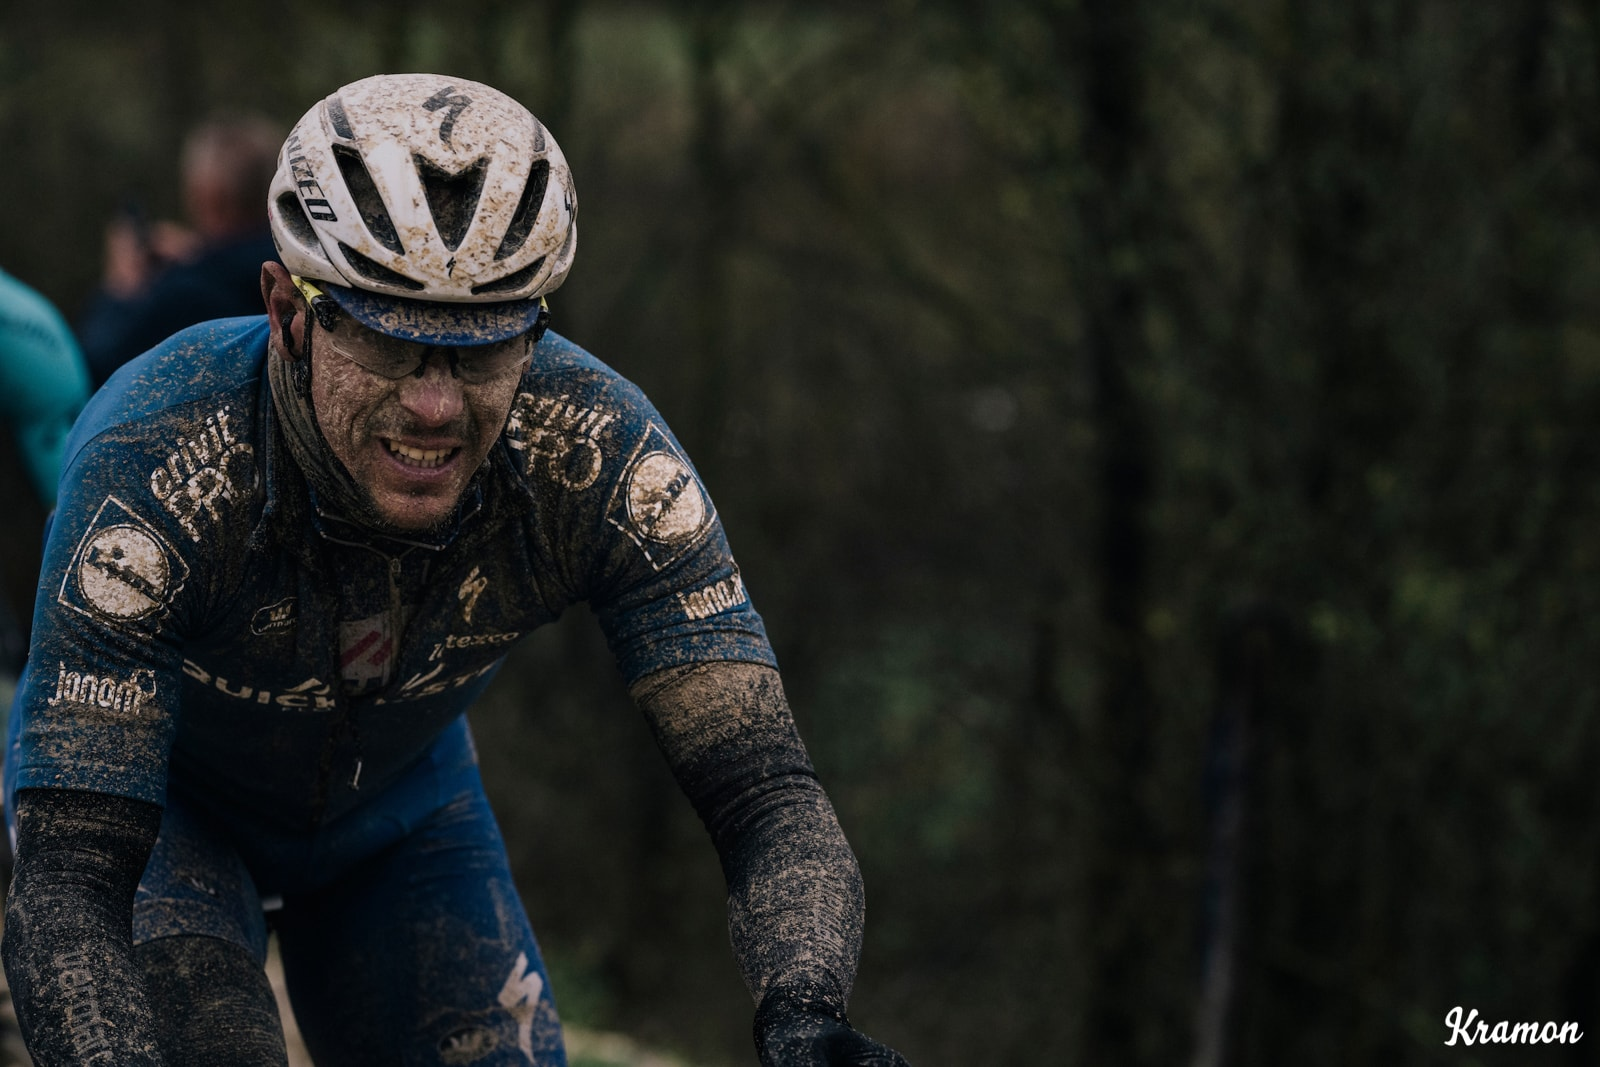 Philippe Gilbert at Strade Bianche 2018